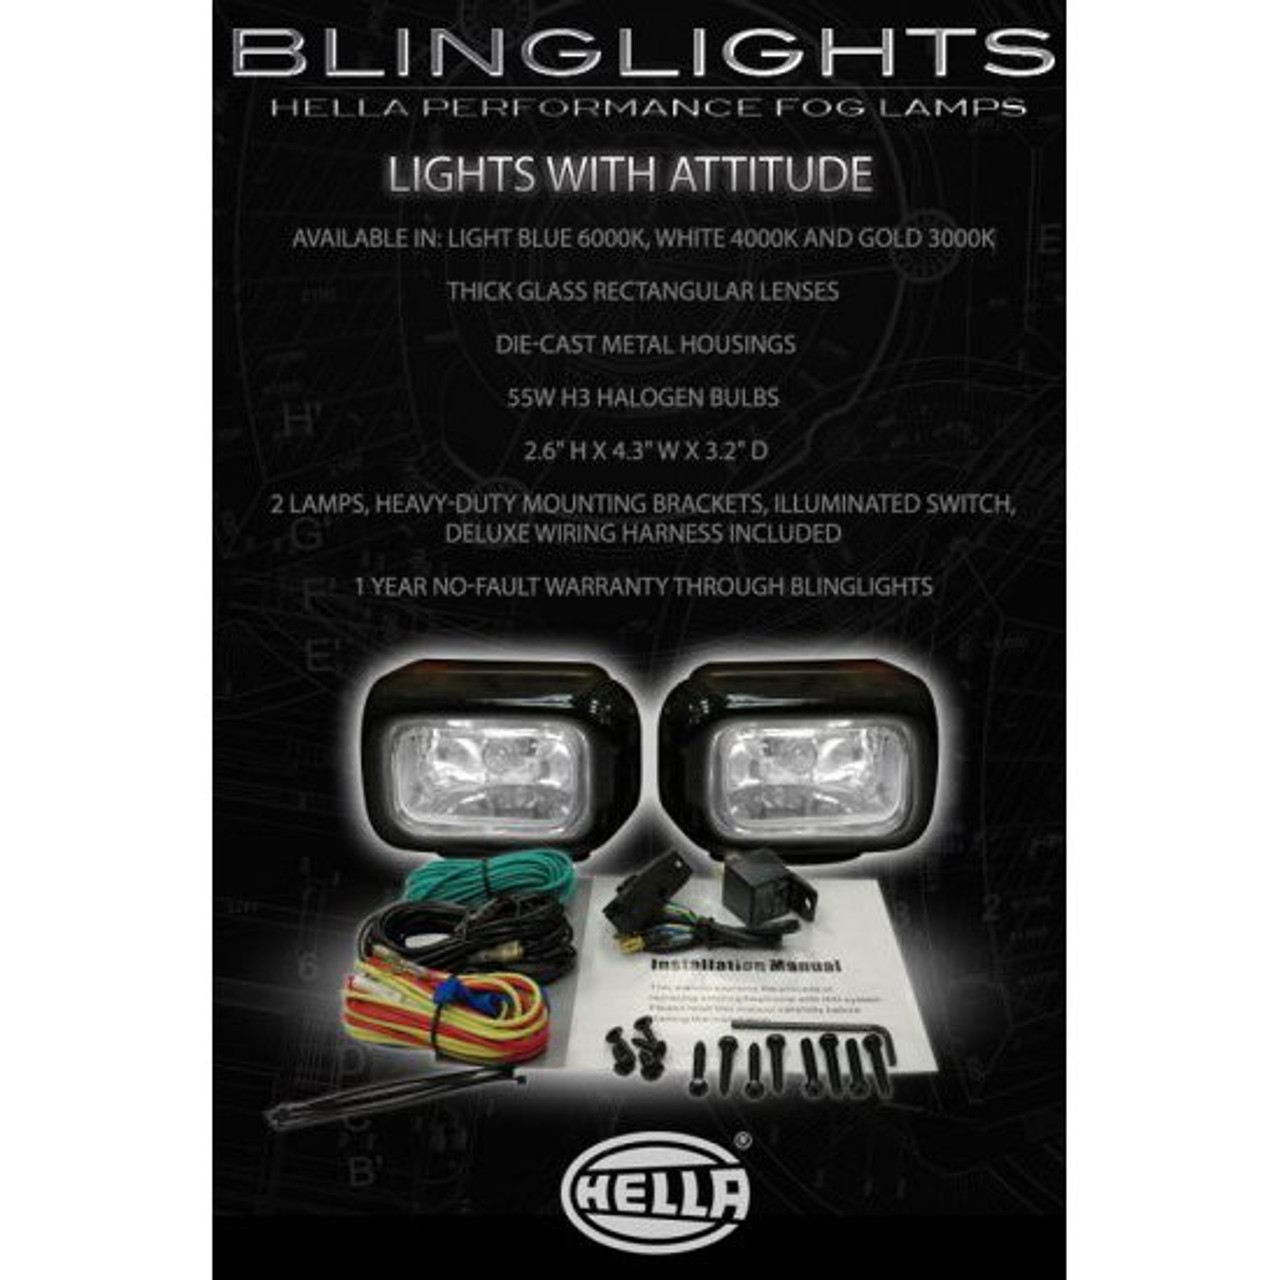 1997 1998 1999 2000 2001 2002 Toyota Caldina Xenon Fog Lamps Driving Lights Foglamps Kit